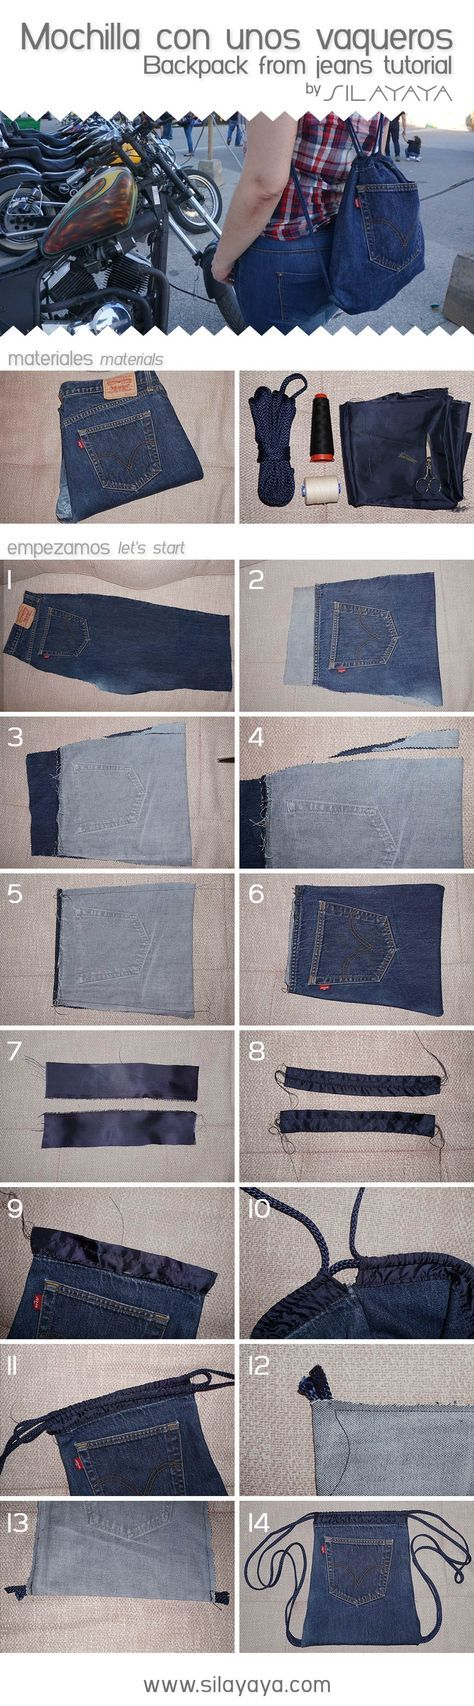 Tutorial mochila vaquera hecha con unos Levis. Backpack from jeans DIY #vaqueros